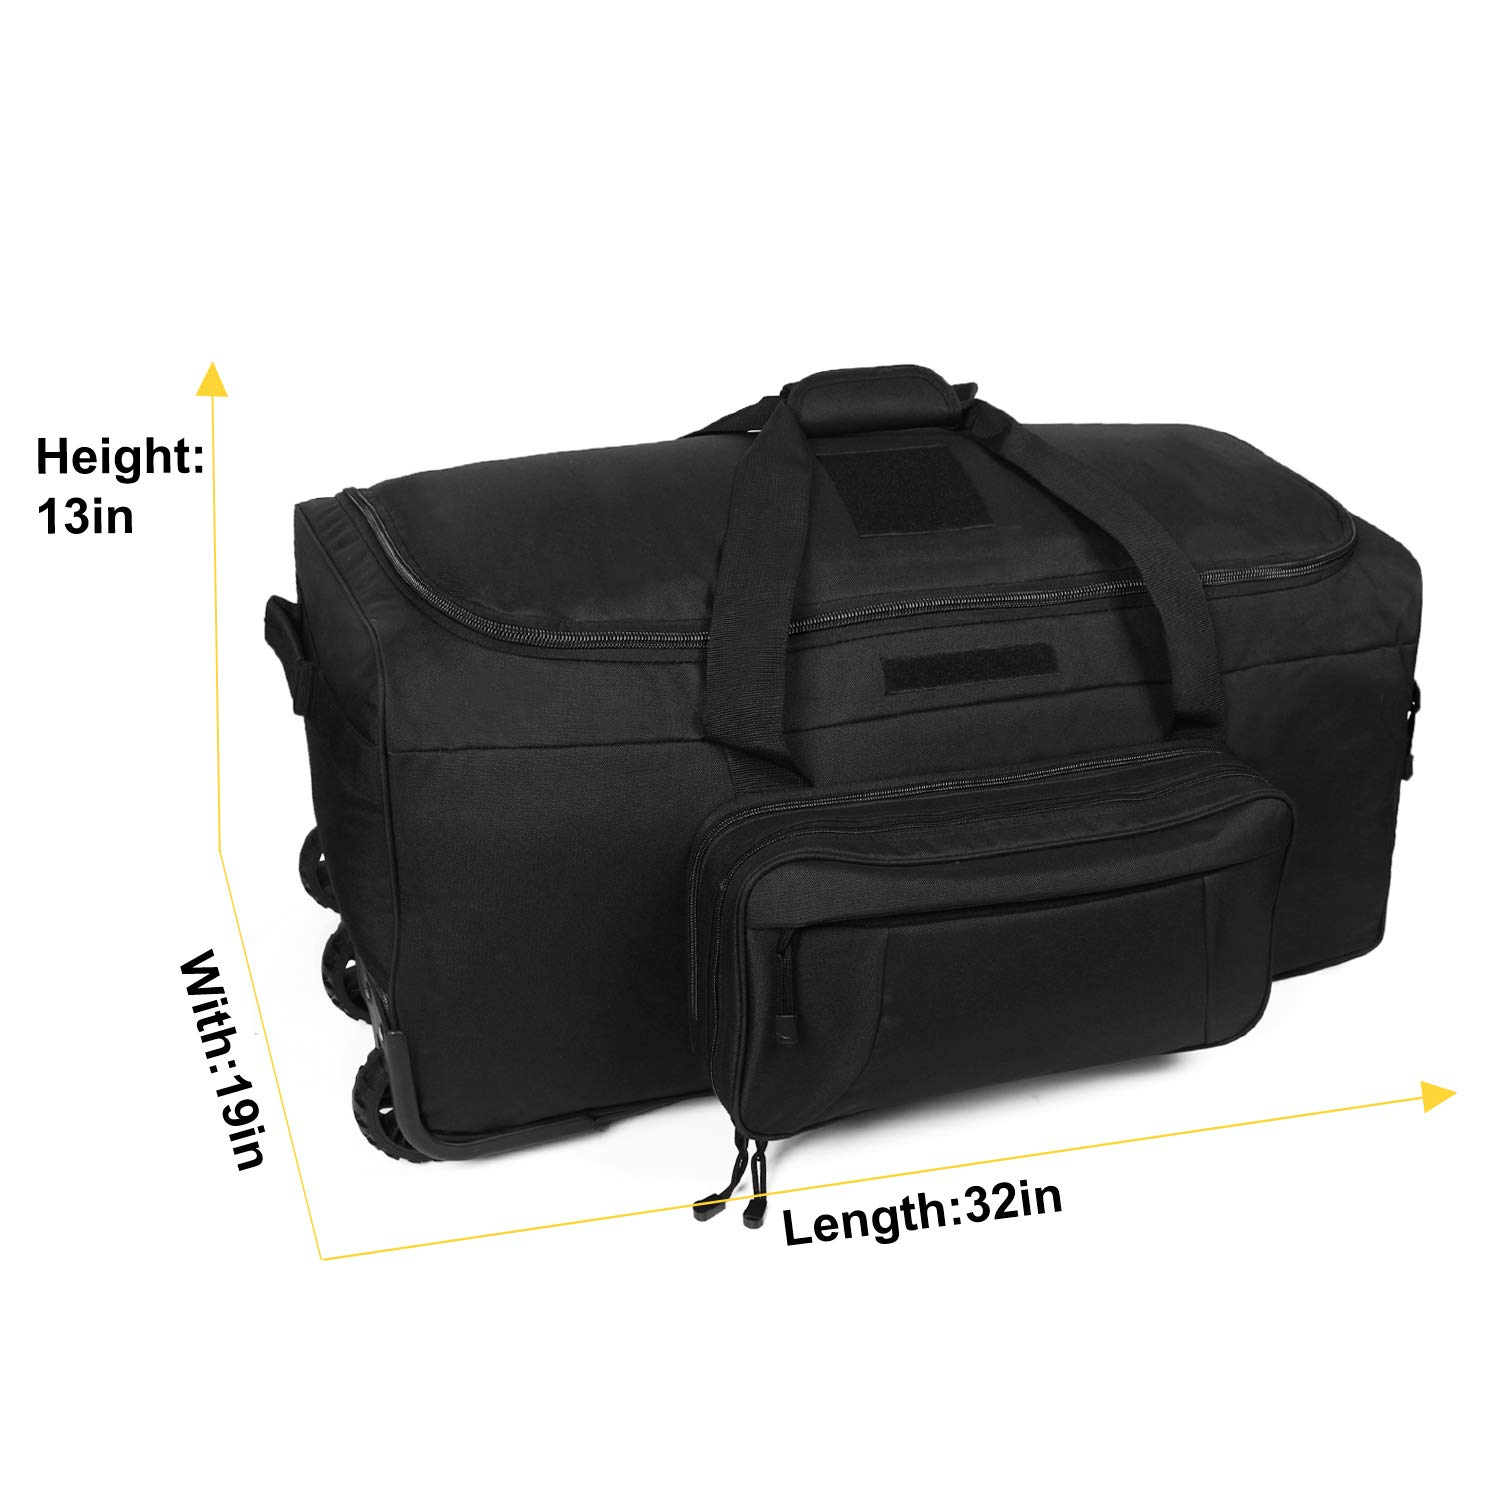 Amazon.com: XWLSPORT - Bolsa de transporte militar con ...